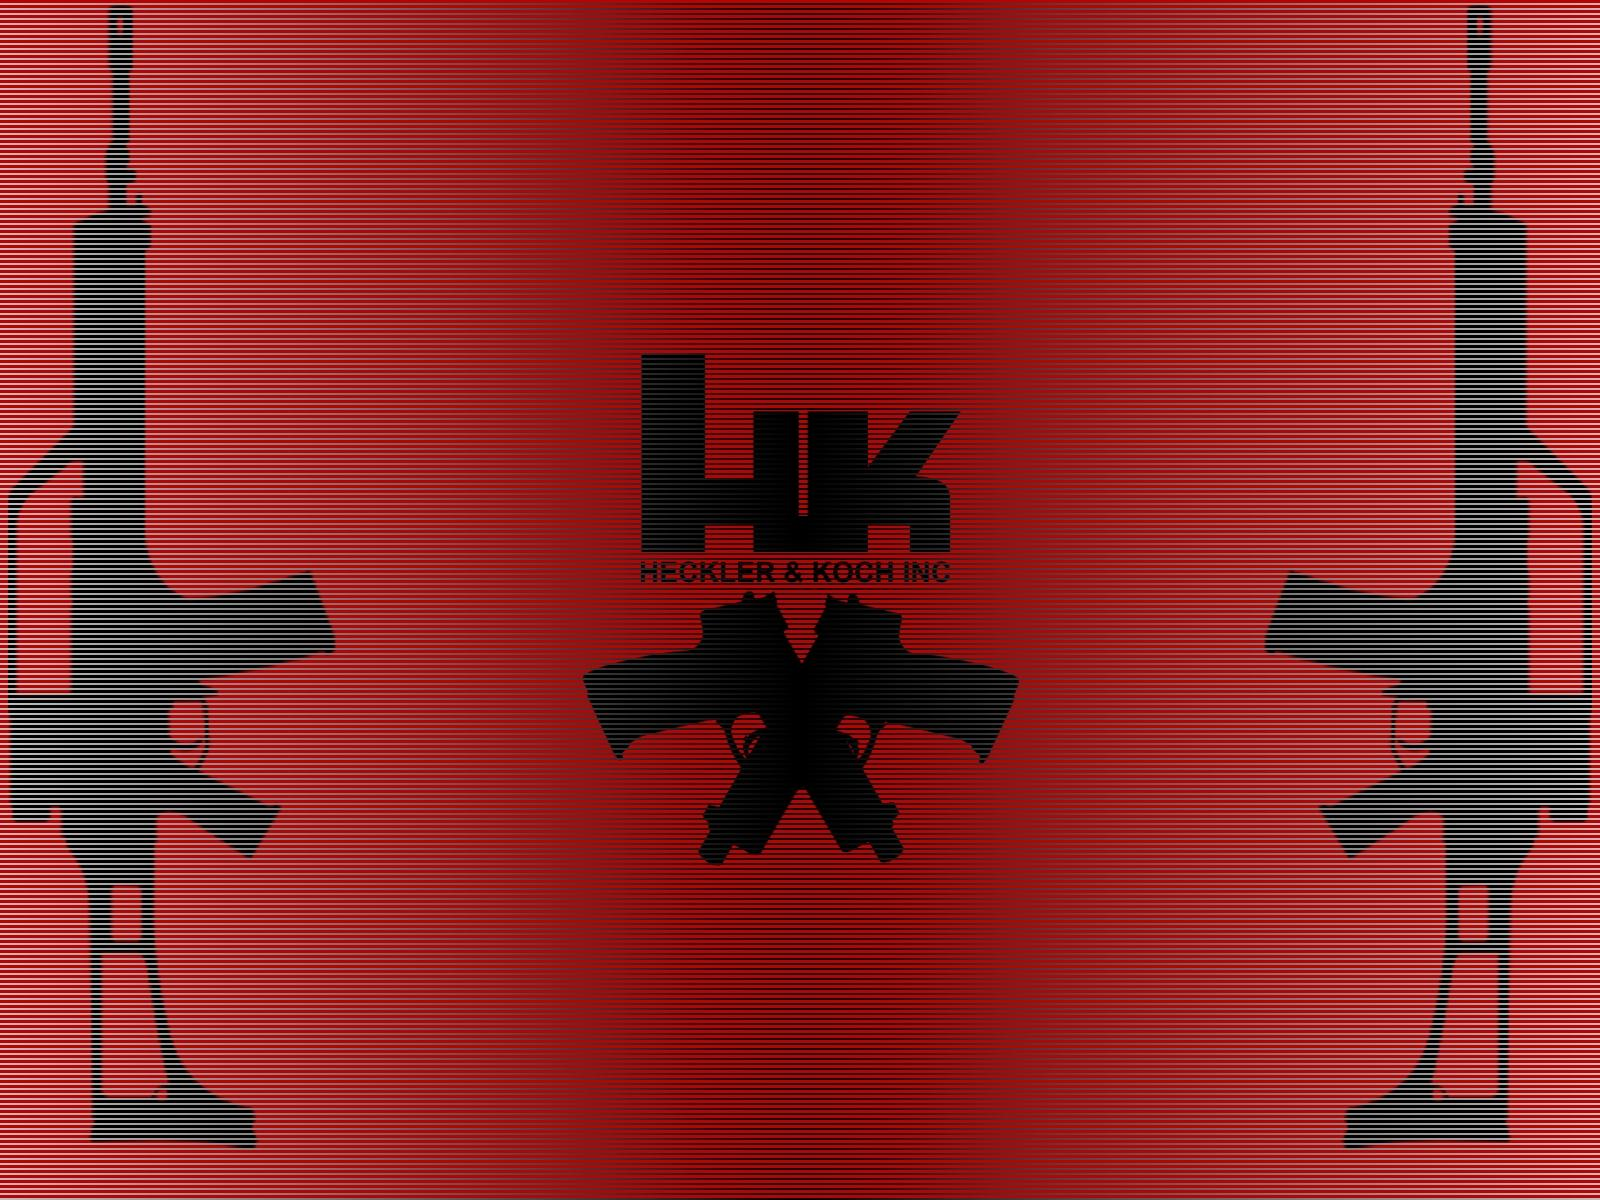 Heckler And Koch Wallpaper Guns Heckler and Koch ...